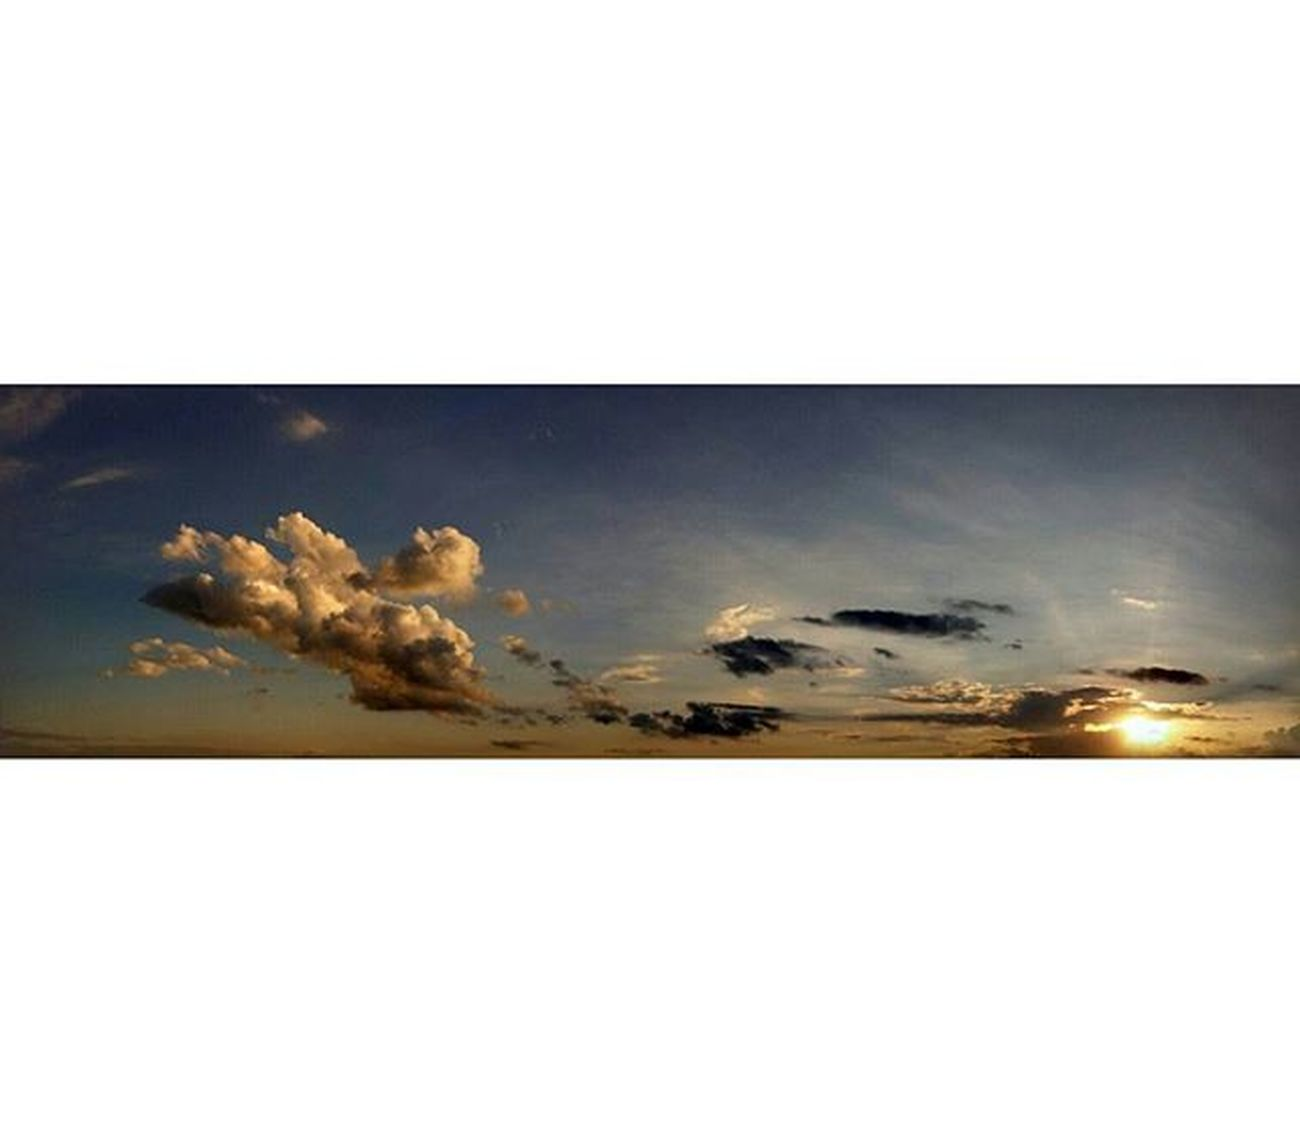 i'm so in love Excusemewhileikissthesky ❤ Beautiful Gorgeous Sky Clouds Eveningsun Staugustineflorida Staugustinebeach Stauggie 904staugustine SomewhereonA1A Naturelover Amazingsky Amazing_skyshotz Panoramic Justgoshoot Instanature Instasky Instagood Igsky Igclouds Ignature LoveFl Samsung Galaxynote4 visualsjw jwphotography jw jehovah jehovahscreation